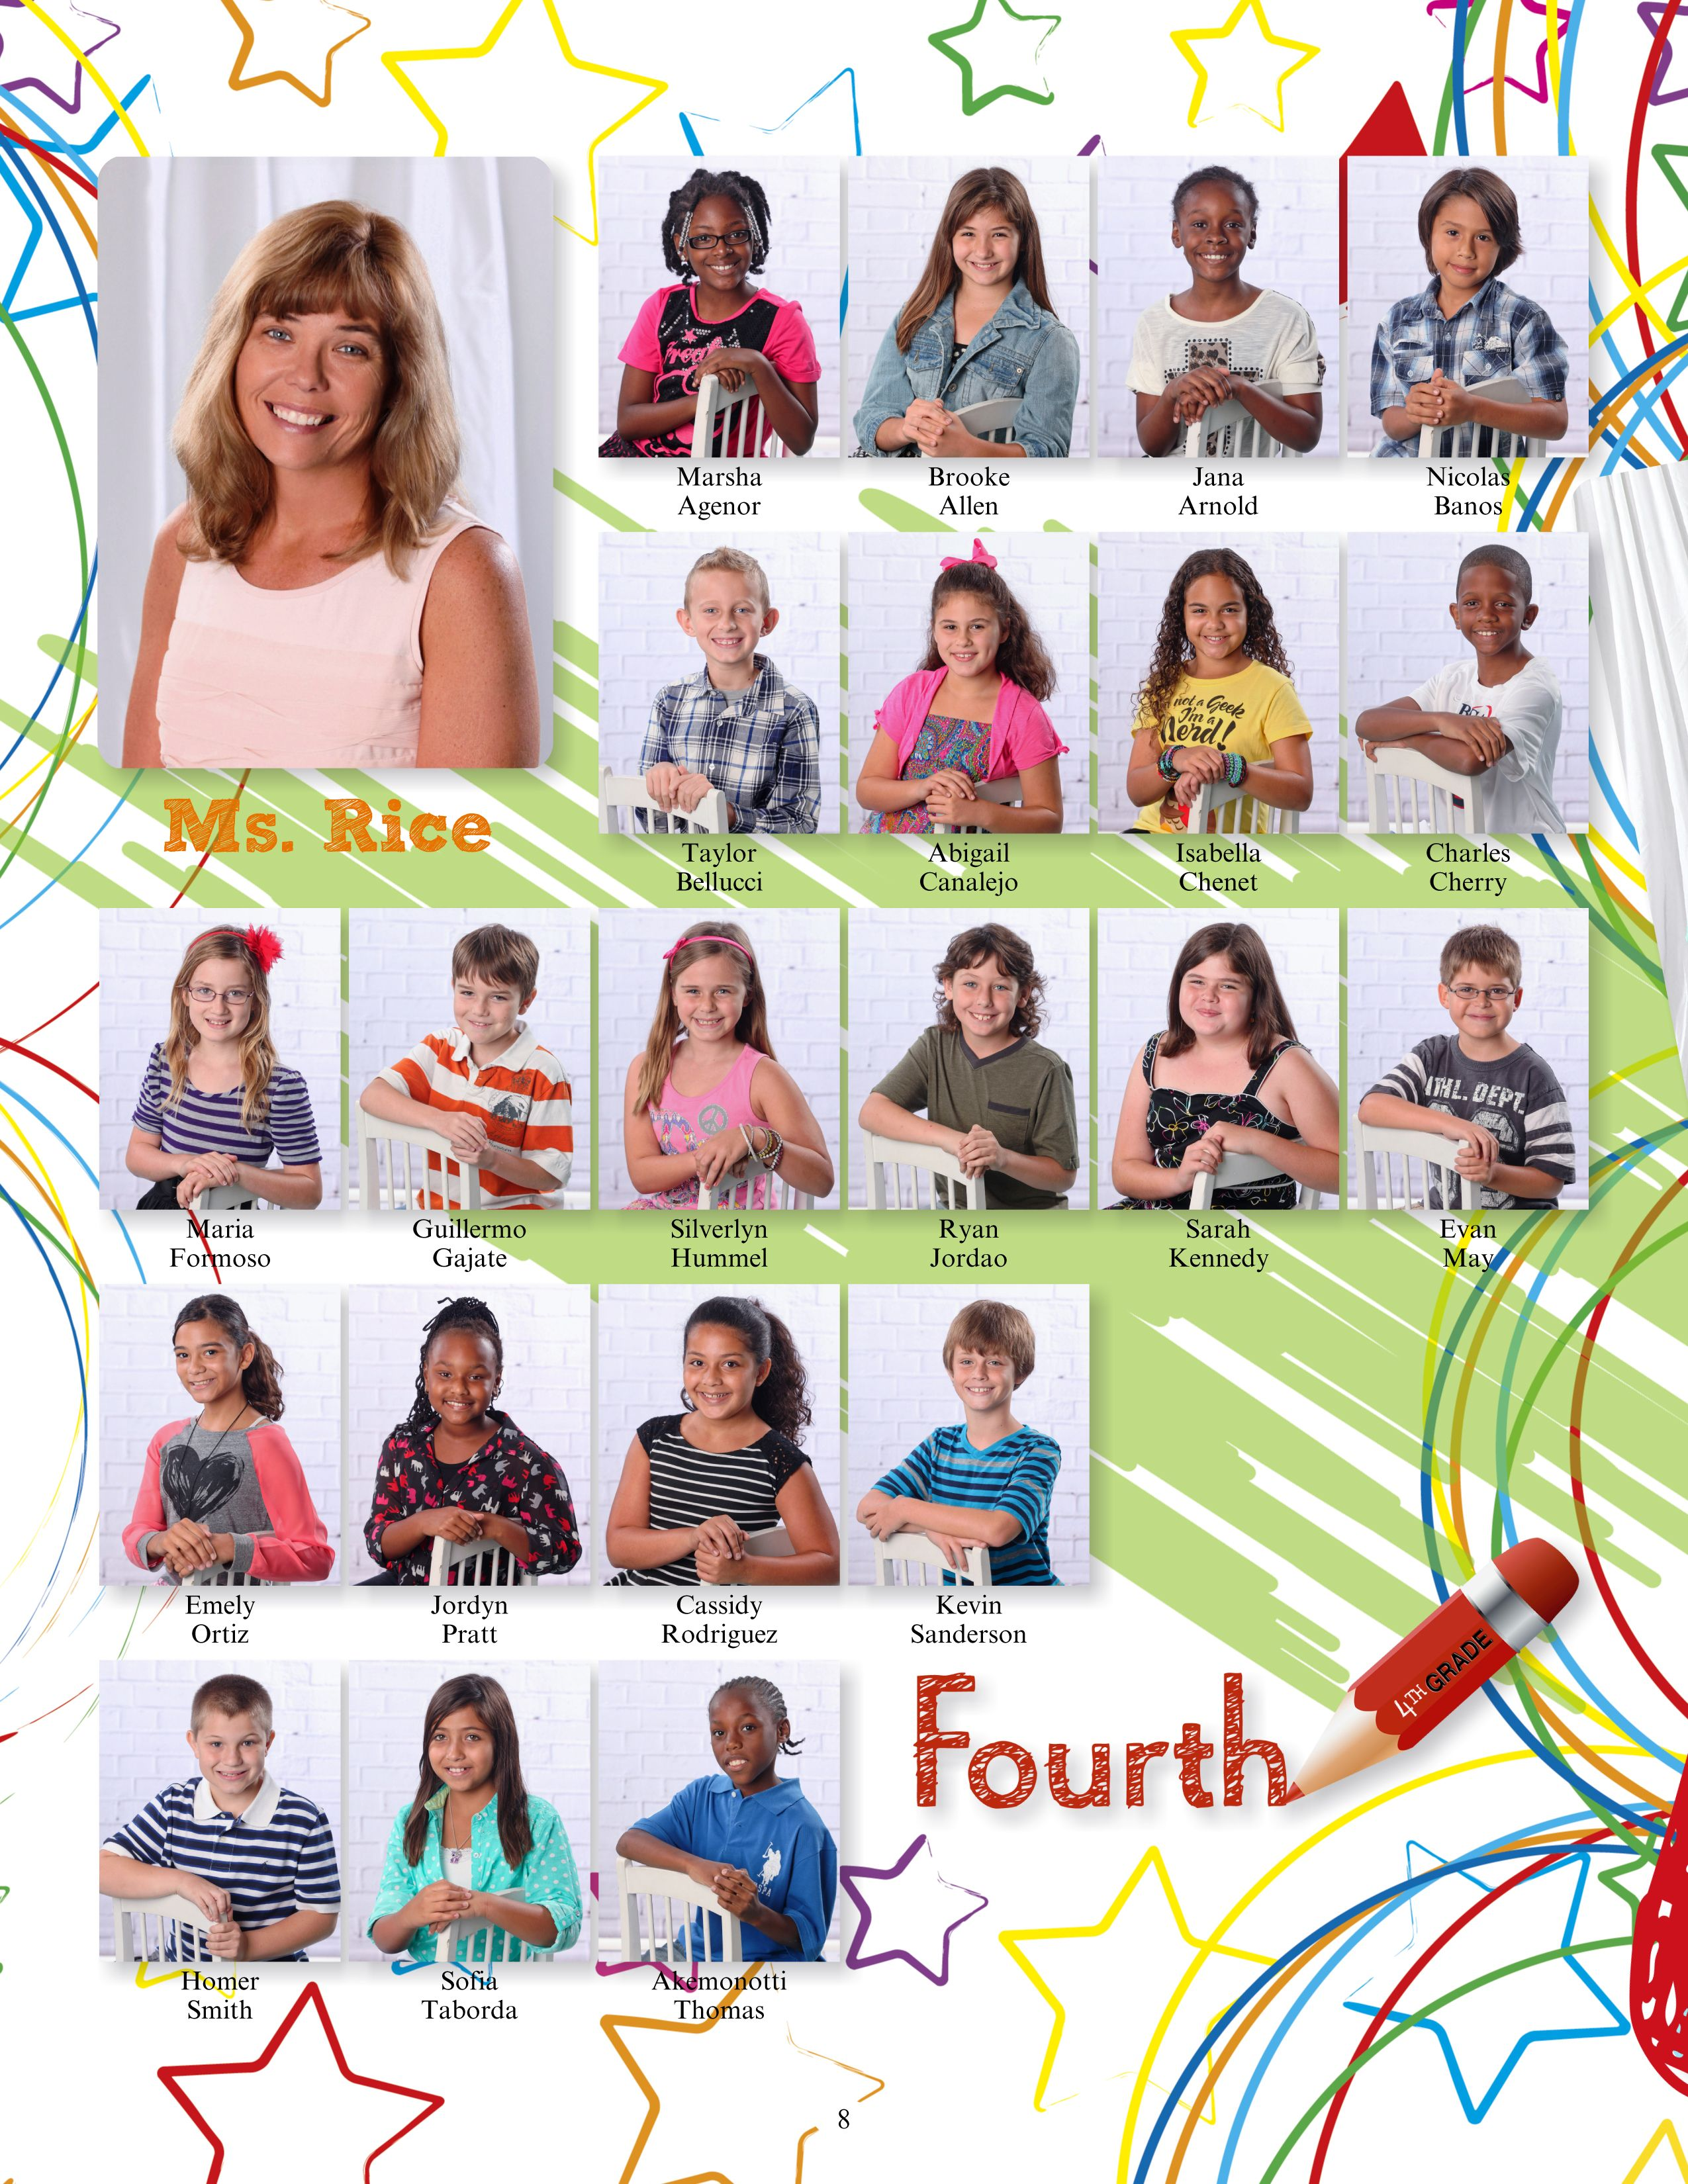 Elementary school scrapbook ideas - Looking For Inspiration For Your School Yearbook Project Check Out Our Elementary School Yearbook Sample And See How Great Your School Yearbook Can Look